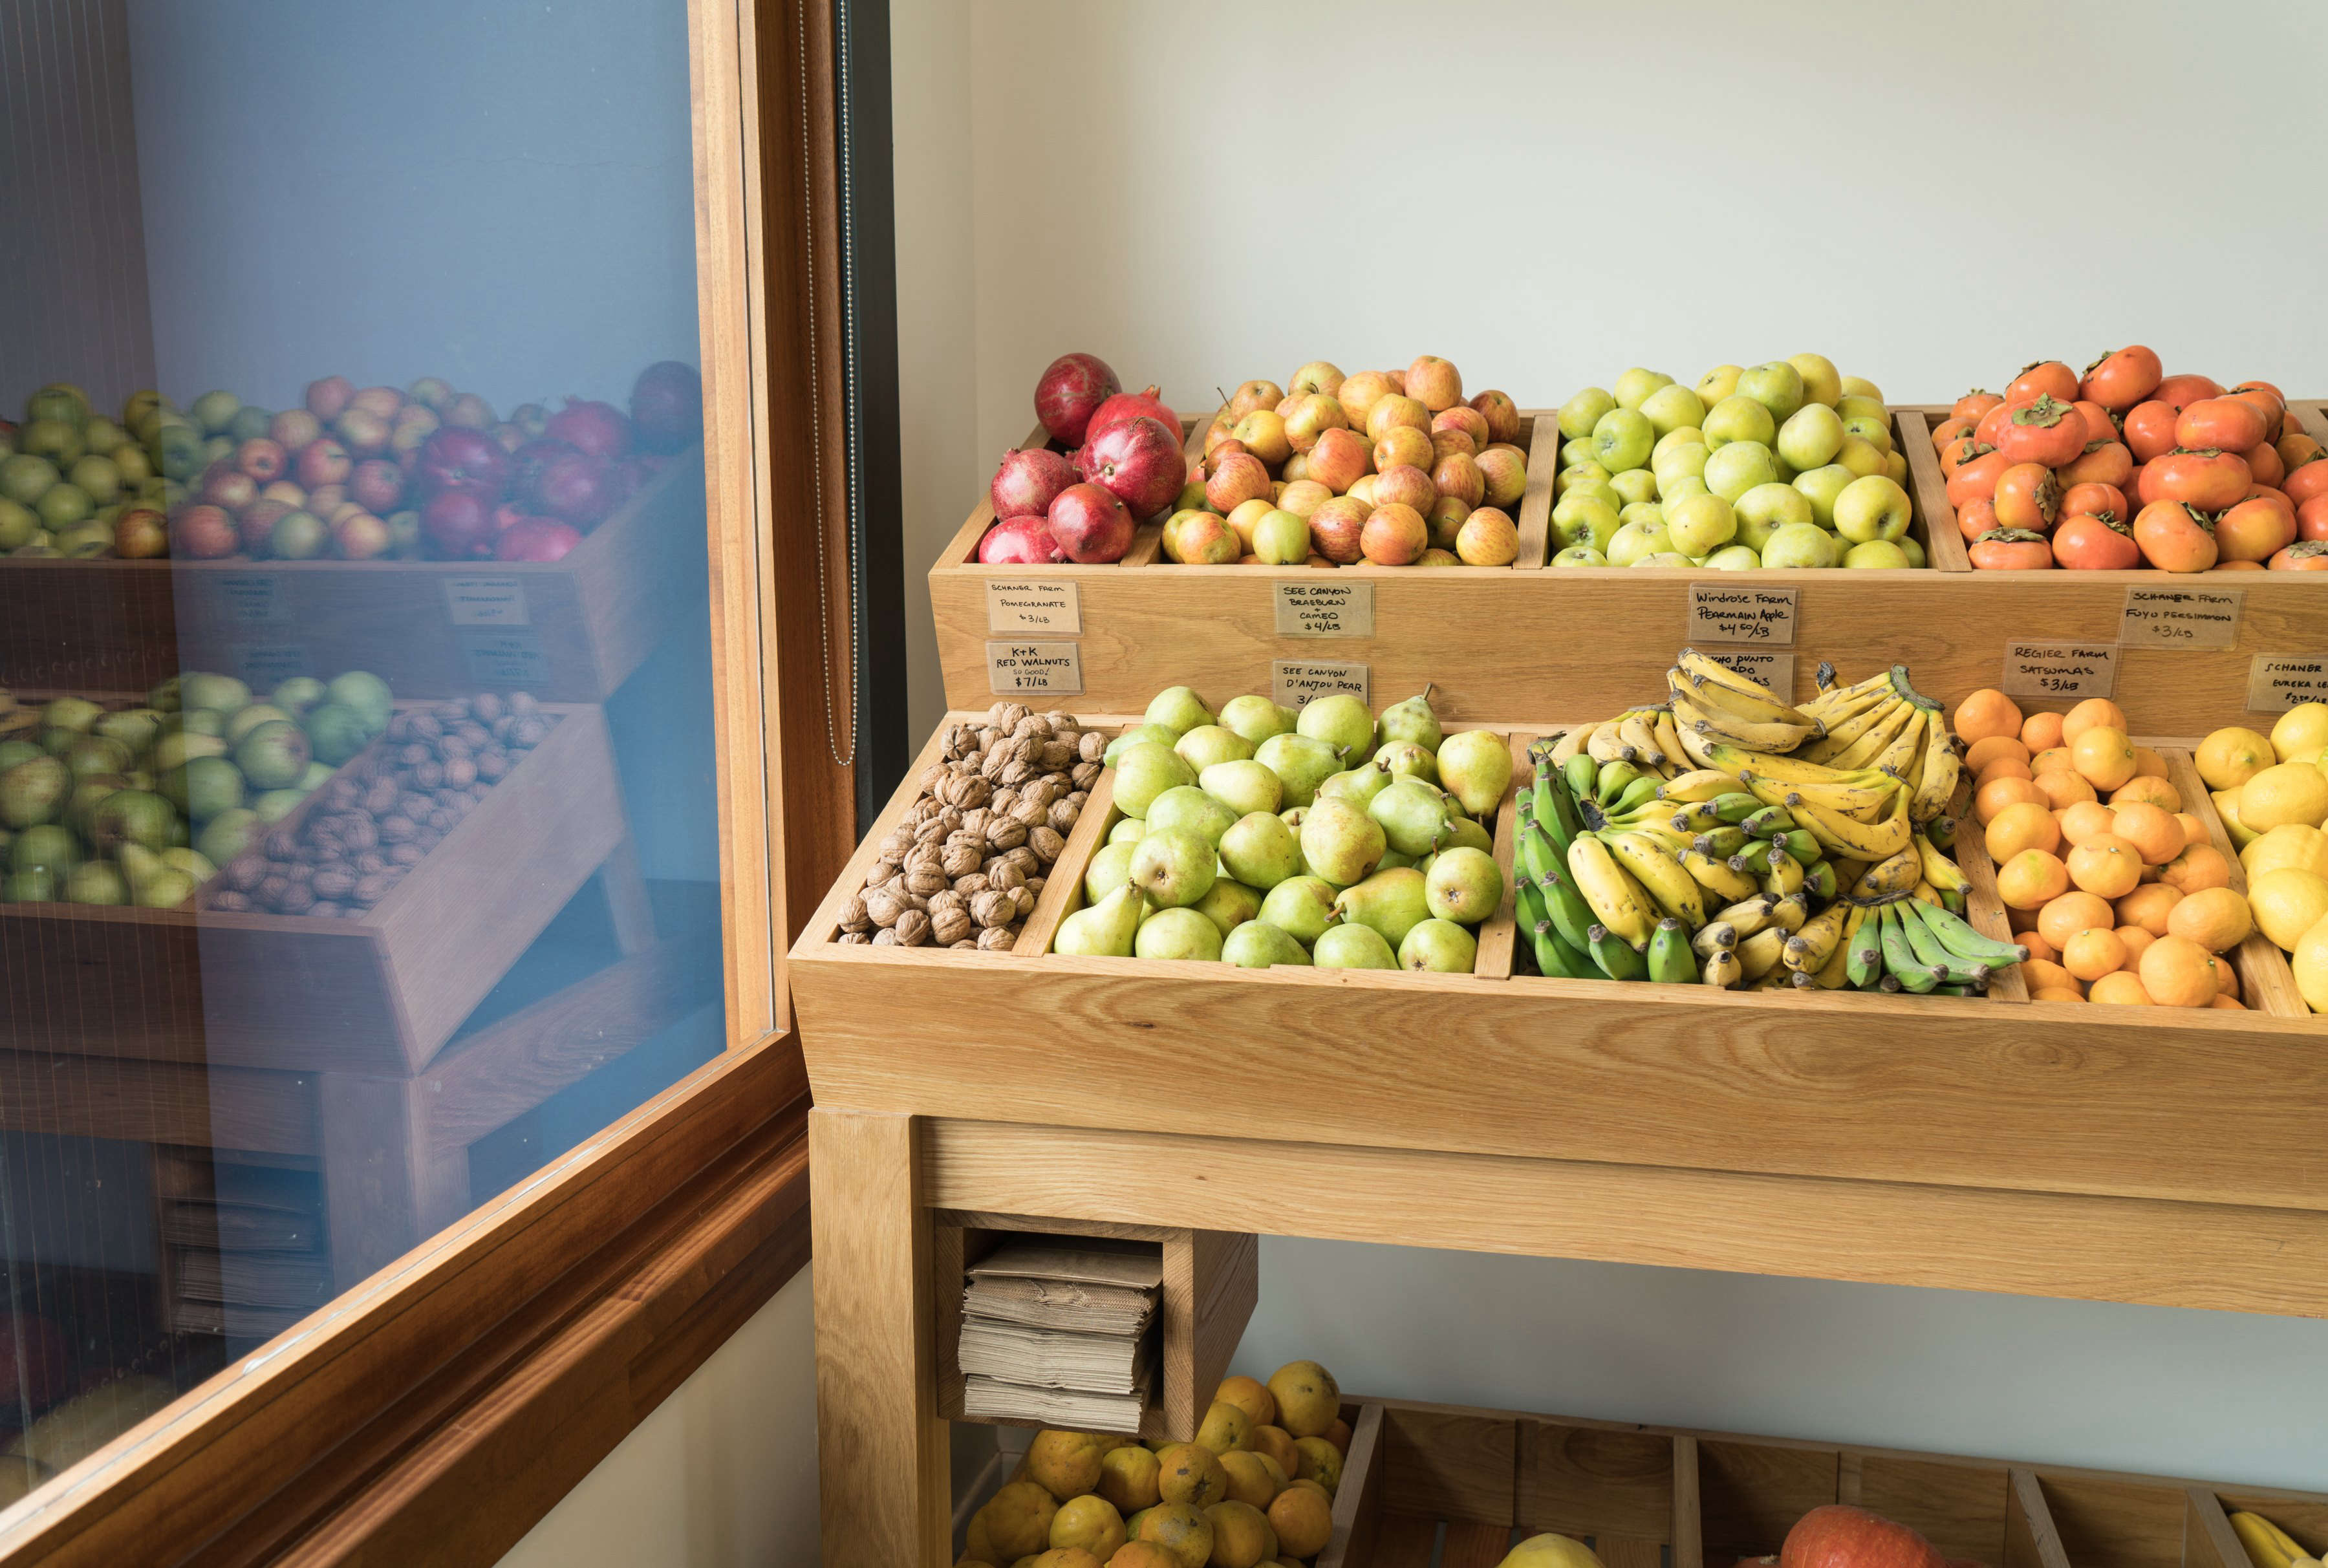 Expert advice a greengrocers guide to storing produce and leftovers remodelista sourcebook for the considered home bloglovin